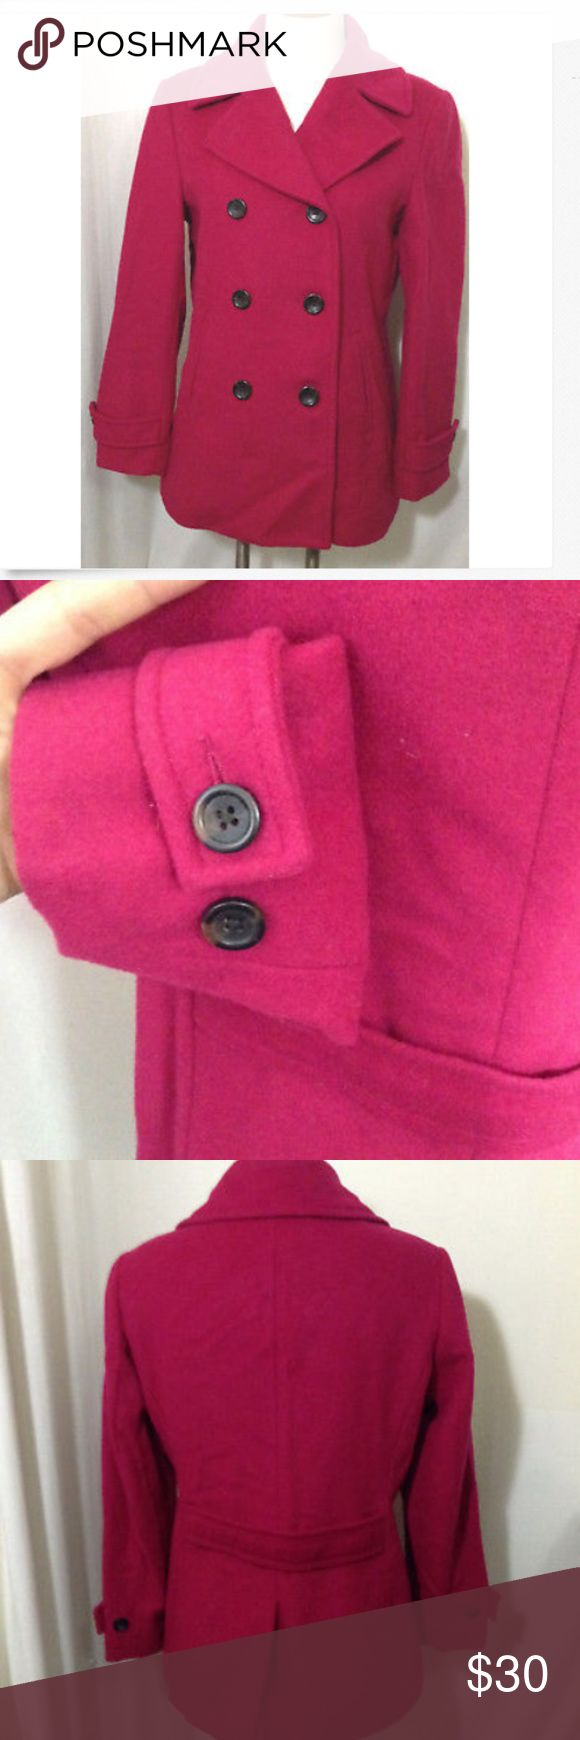 """LANDS END WOMENS PeaCoat Jacket Small Wool Pink 6 BEAUTIFUL LANDS END WOMENS JACKET PeaCoat Jacket Small Wool 100% Pink 6 P  Excellent Condition  2 inner pockets  65% wool  Measurements  pit to pit 20"""" length 26.25"""" arm length from shoulder 22.5"""" waist 18.75"""" Lands' End Jackets & Coats Pea Coats"""